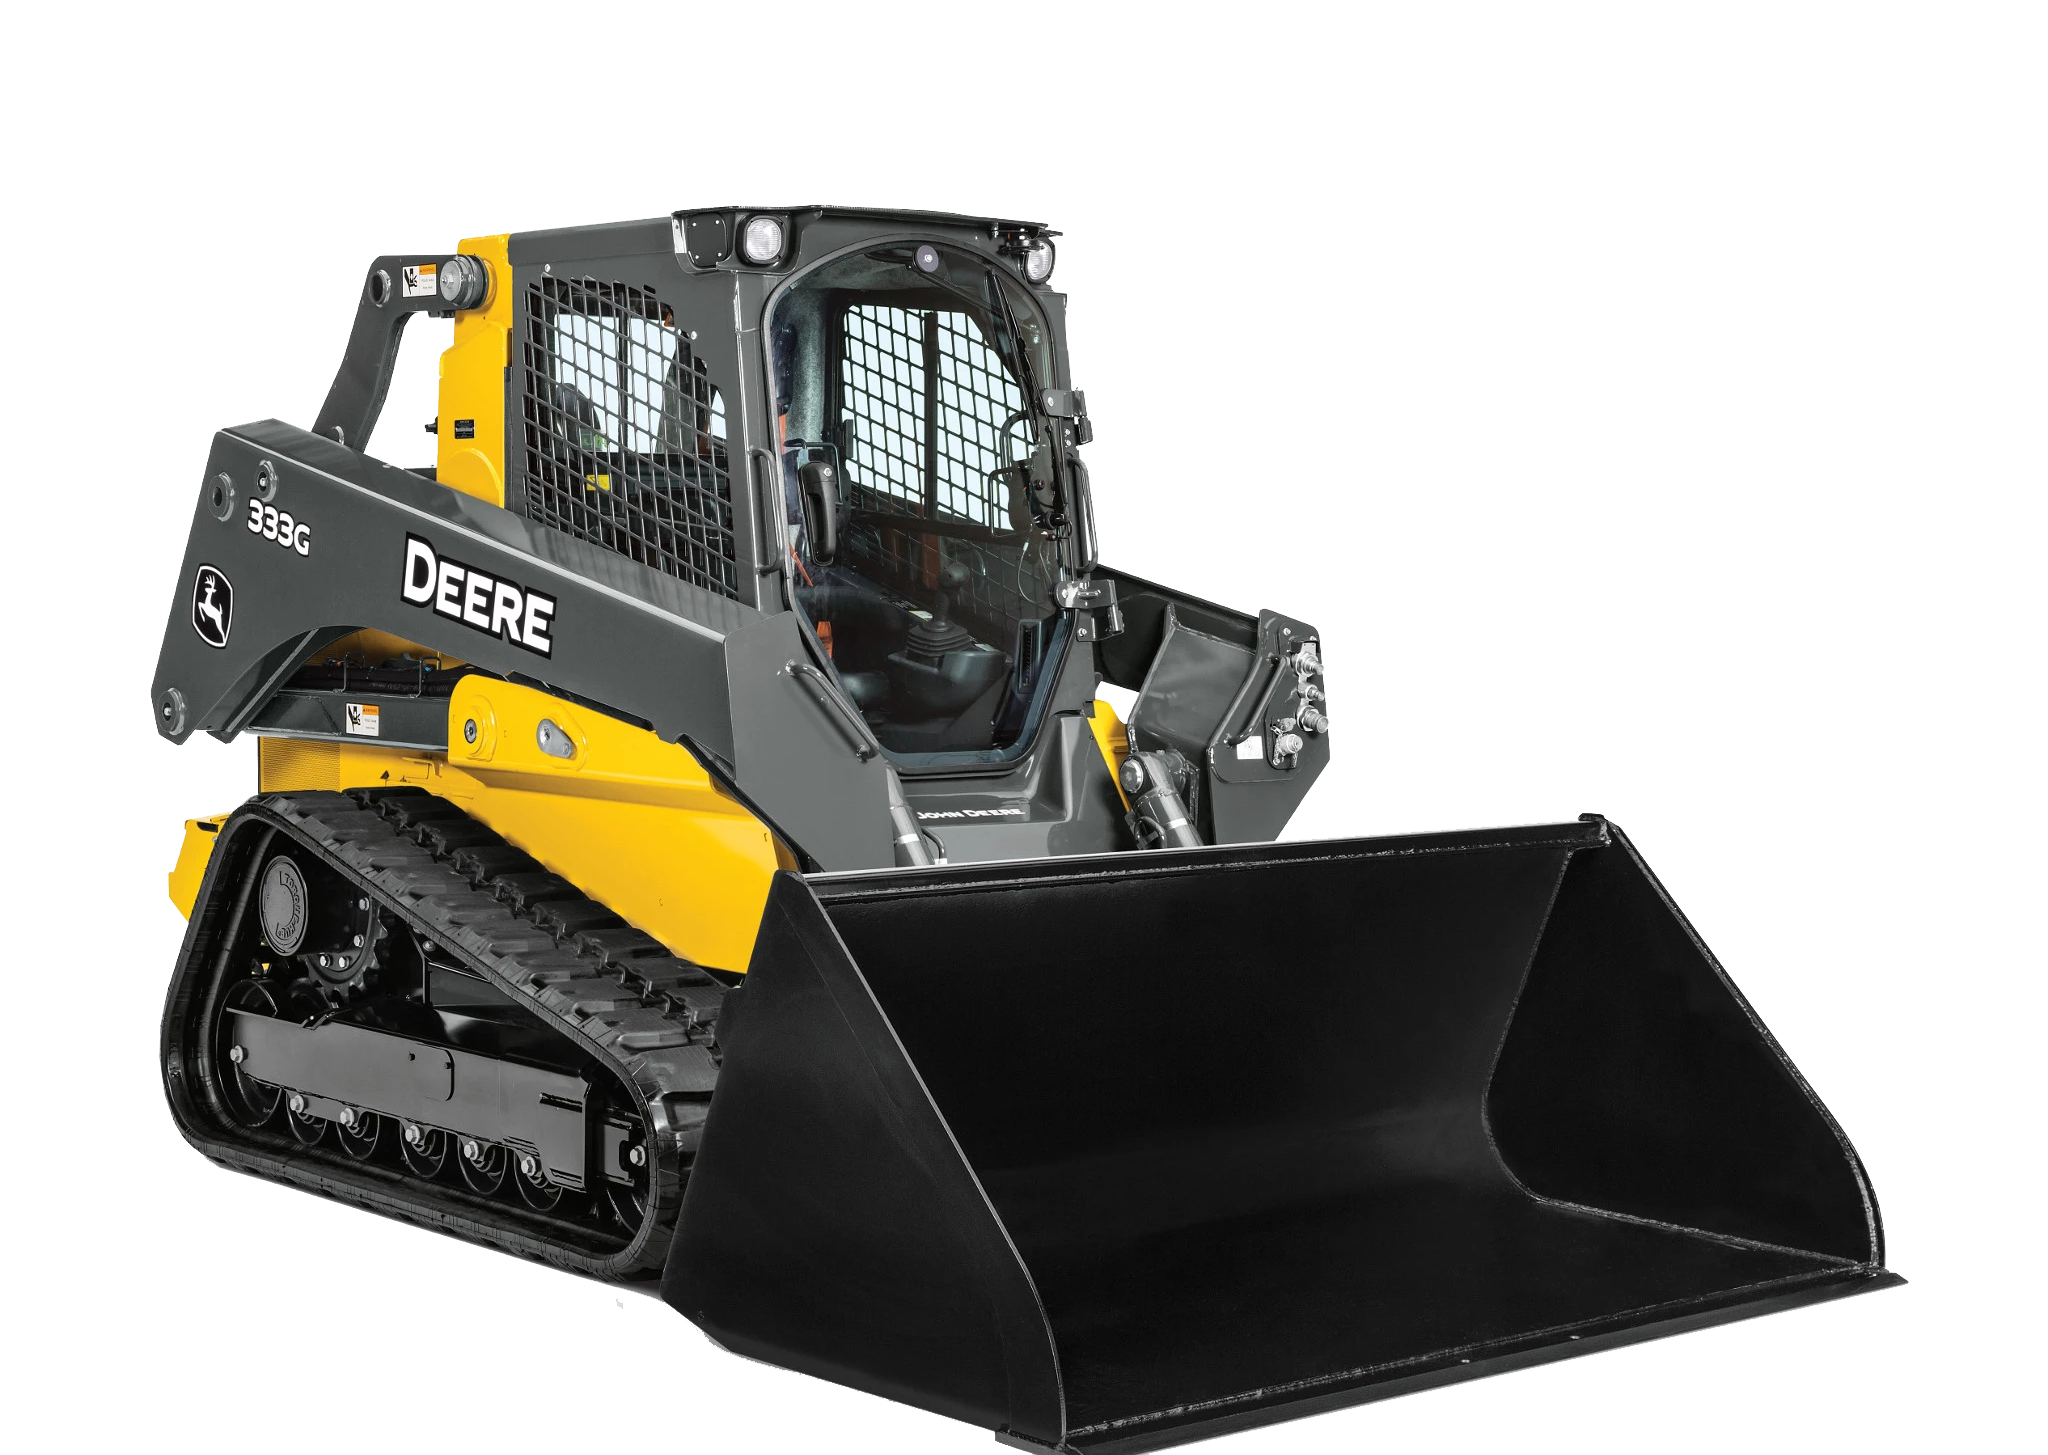 333G Deere bucket loader equipment